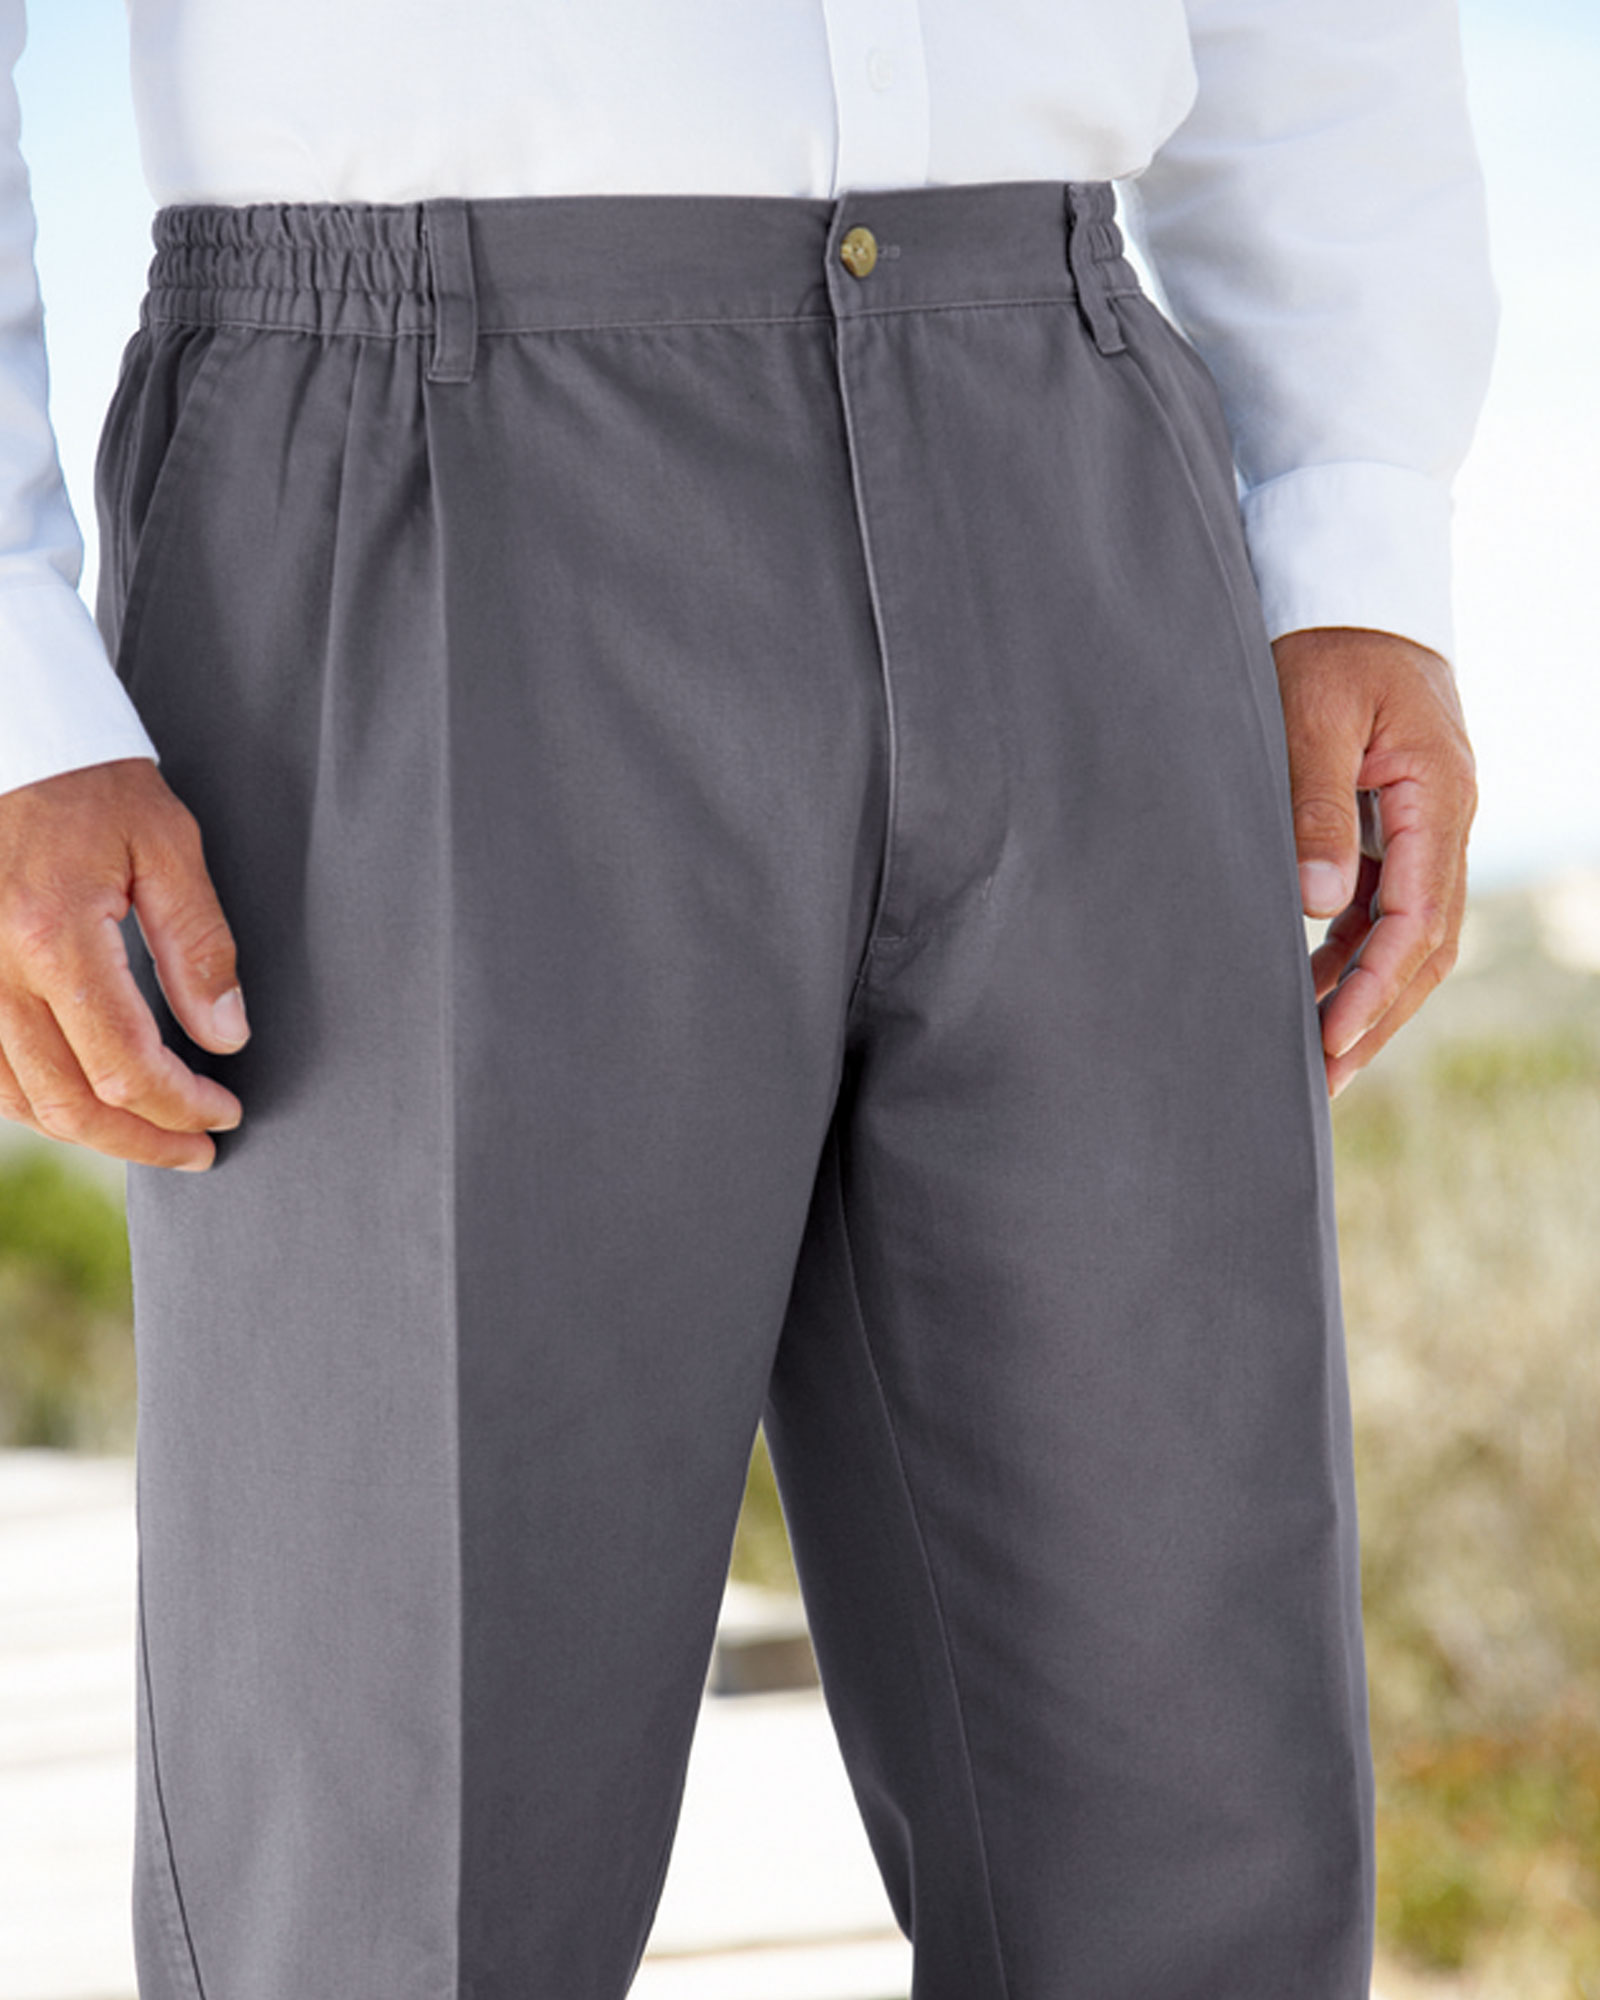 2954f54acd Elasticated Waist Trousers at Cotton Traders